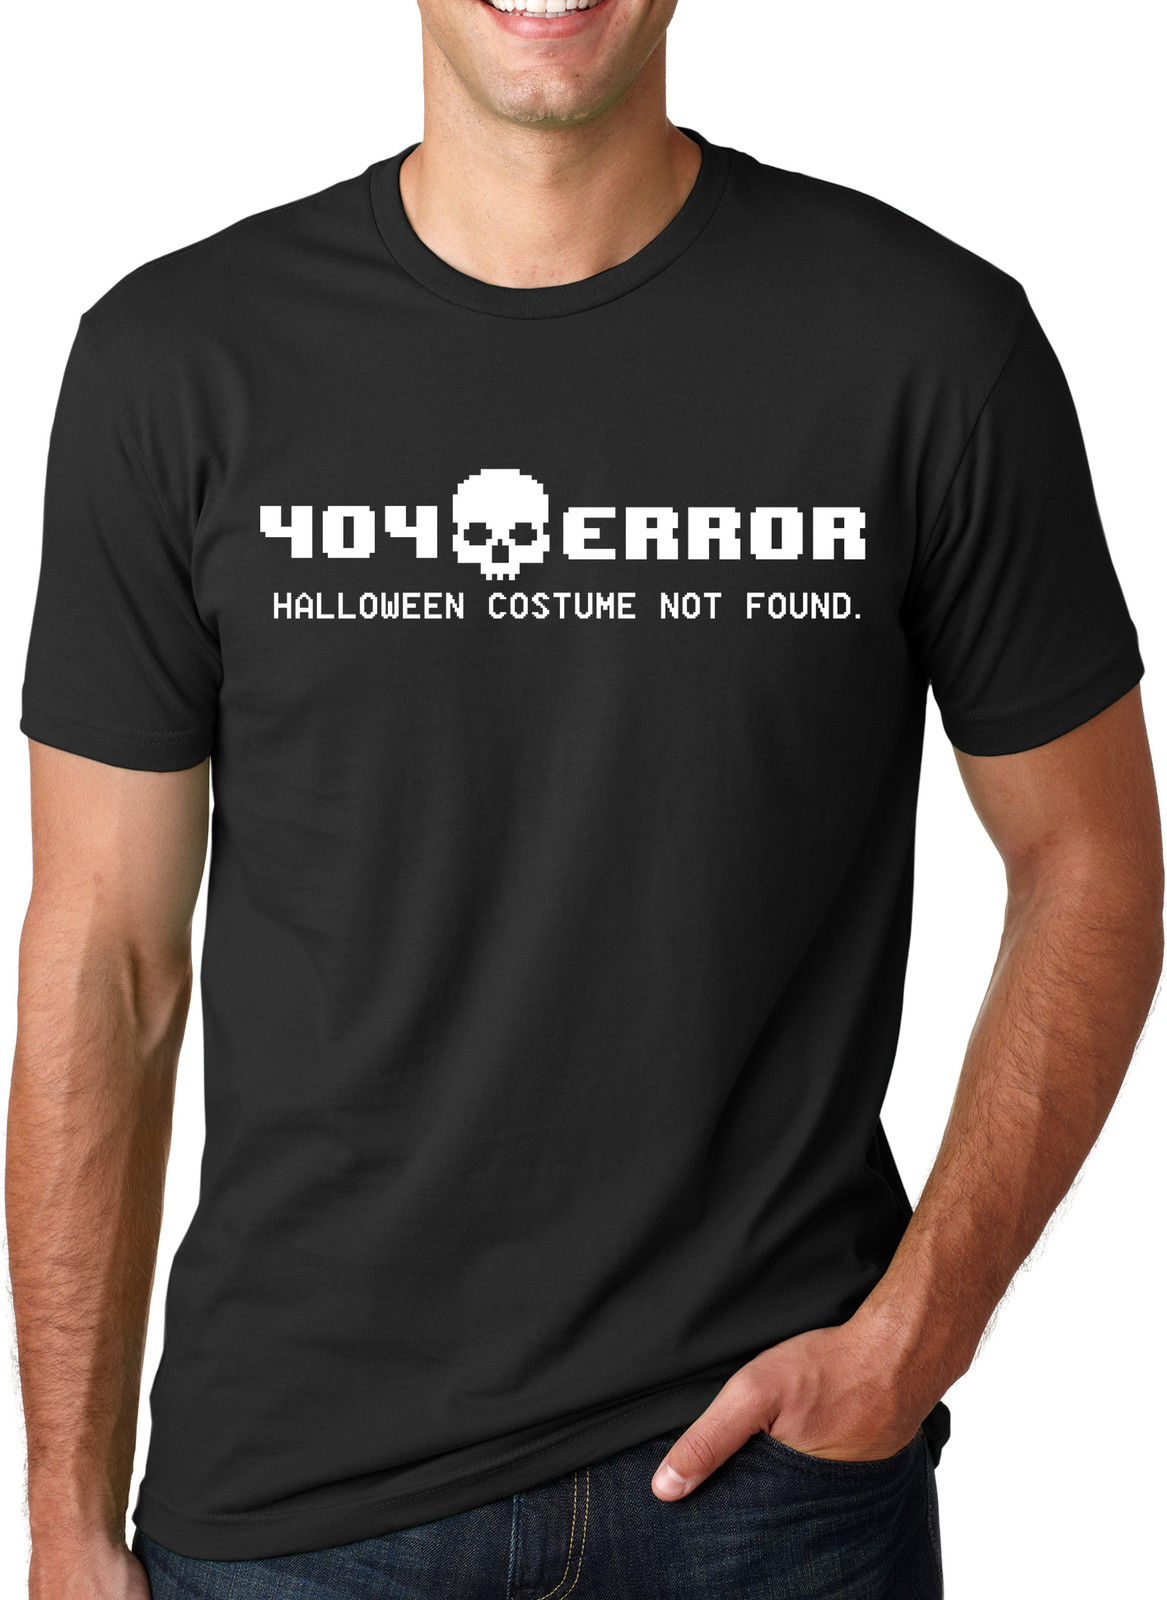 <font><b>404</b></font> <font><b>Error</b></font> Costume Not Found T <font><b>Shirt</b></font> Funny Halloween Tee T-<font><b>Shirt</b></font> Short Sleeve Brand Summer 2018 100% Cotton New Short Sleeve Men image